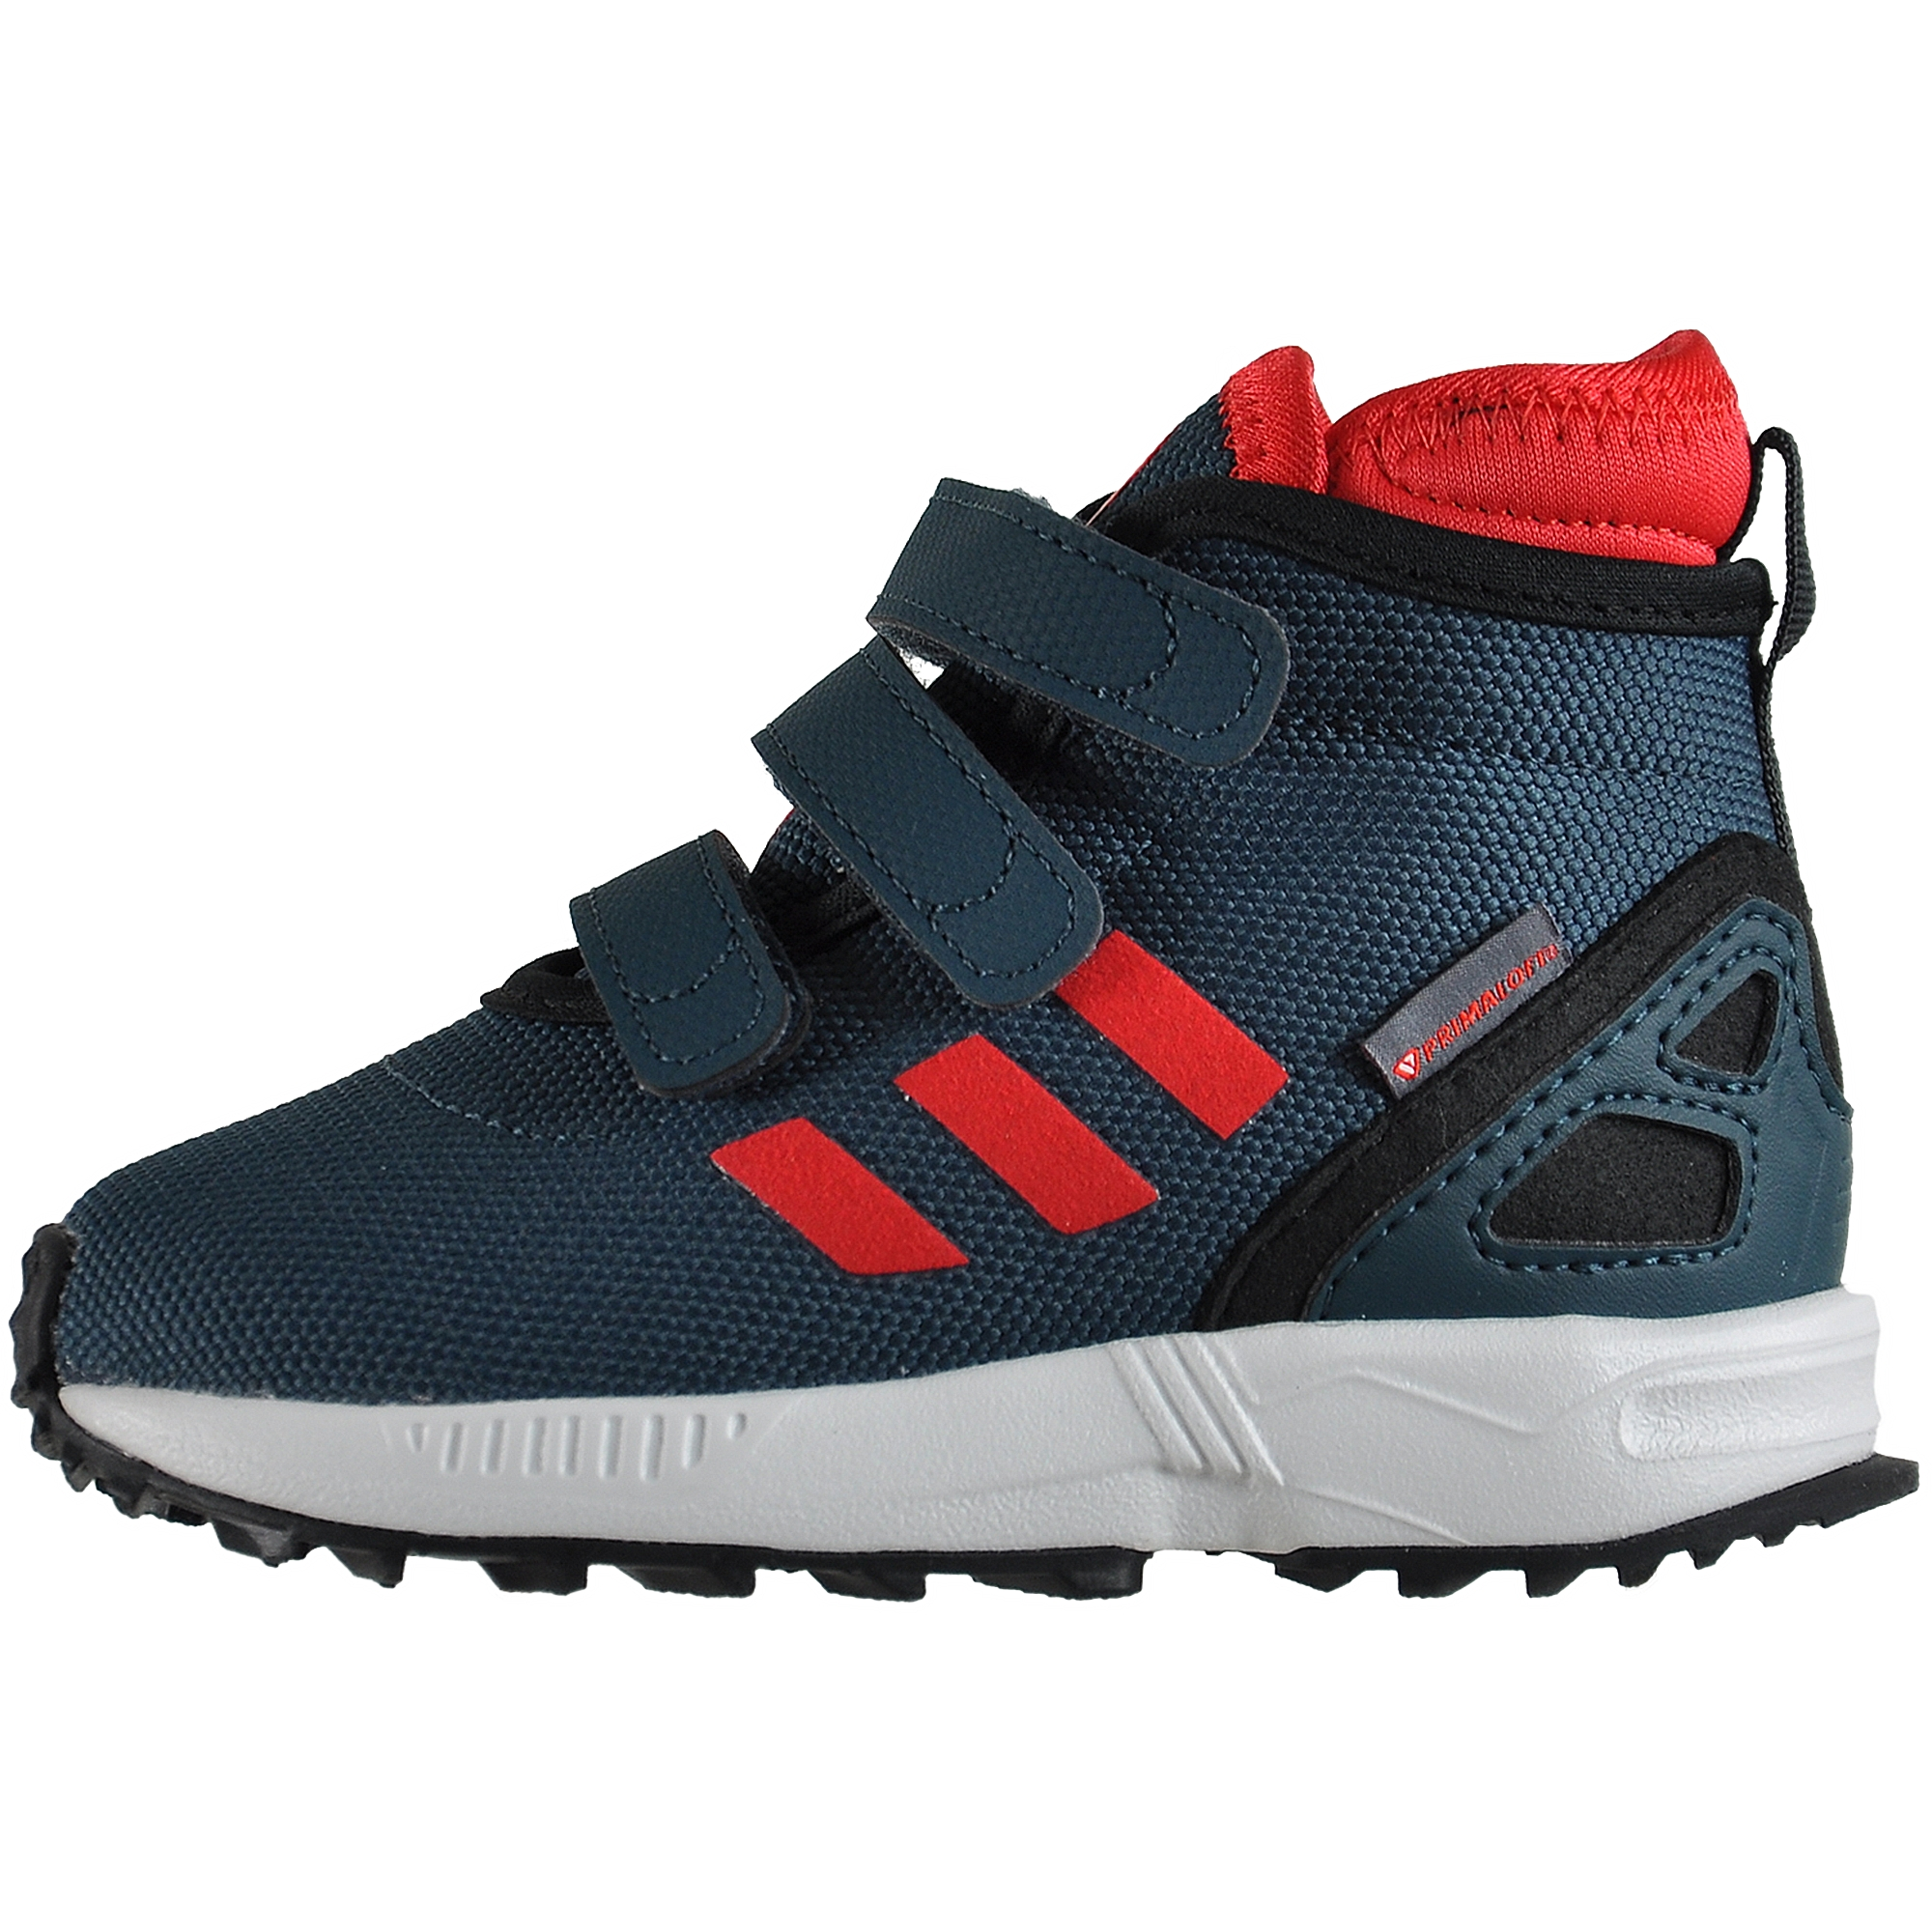 adidas zx flux winter comfort ocuk bot b24752. Black Bedroom Furniture Sets. Home Design Ideas